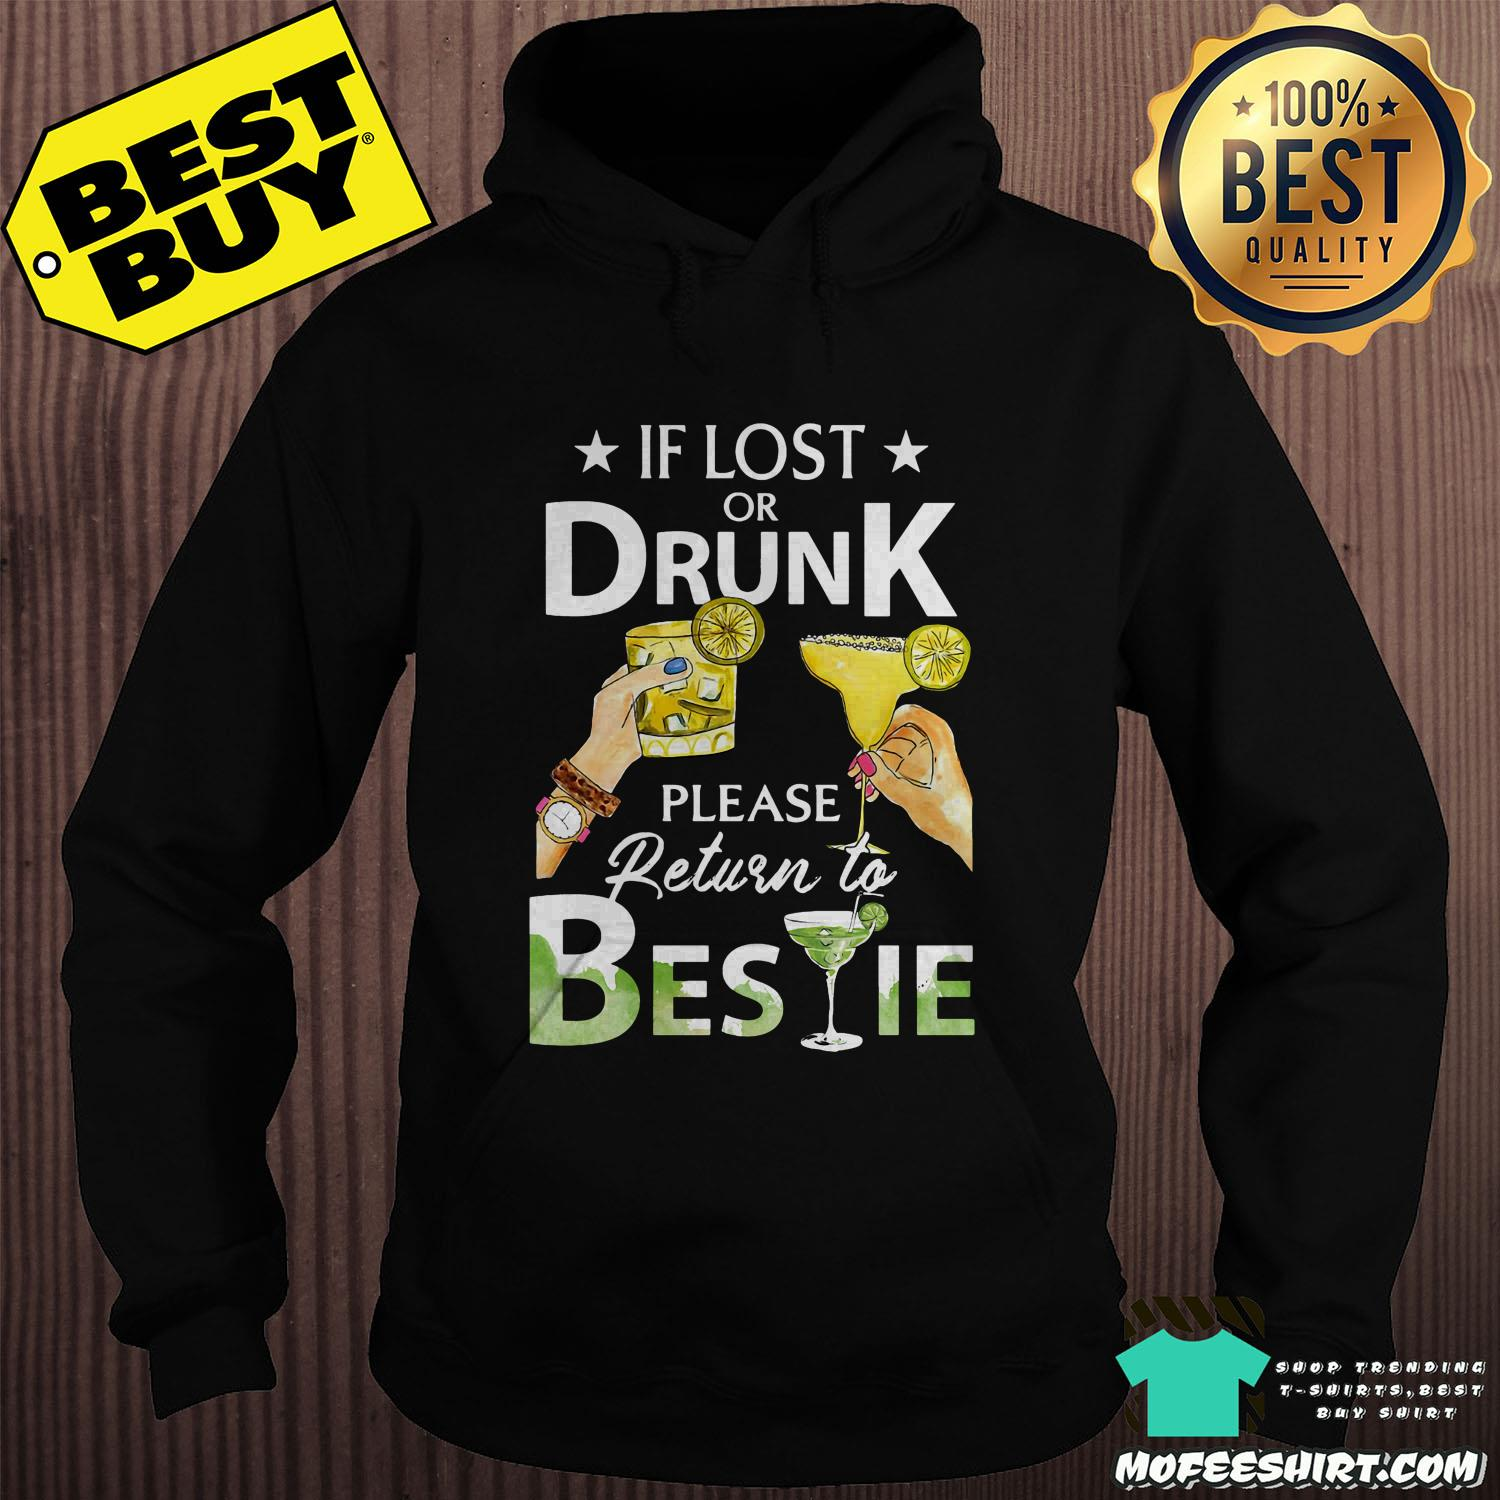 If Lost Or Drunk Please Return To Bestie Shirt Sweater